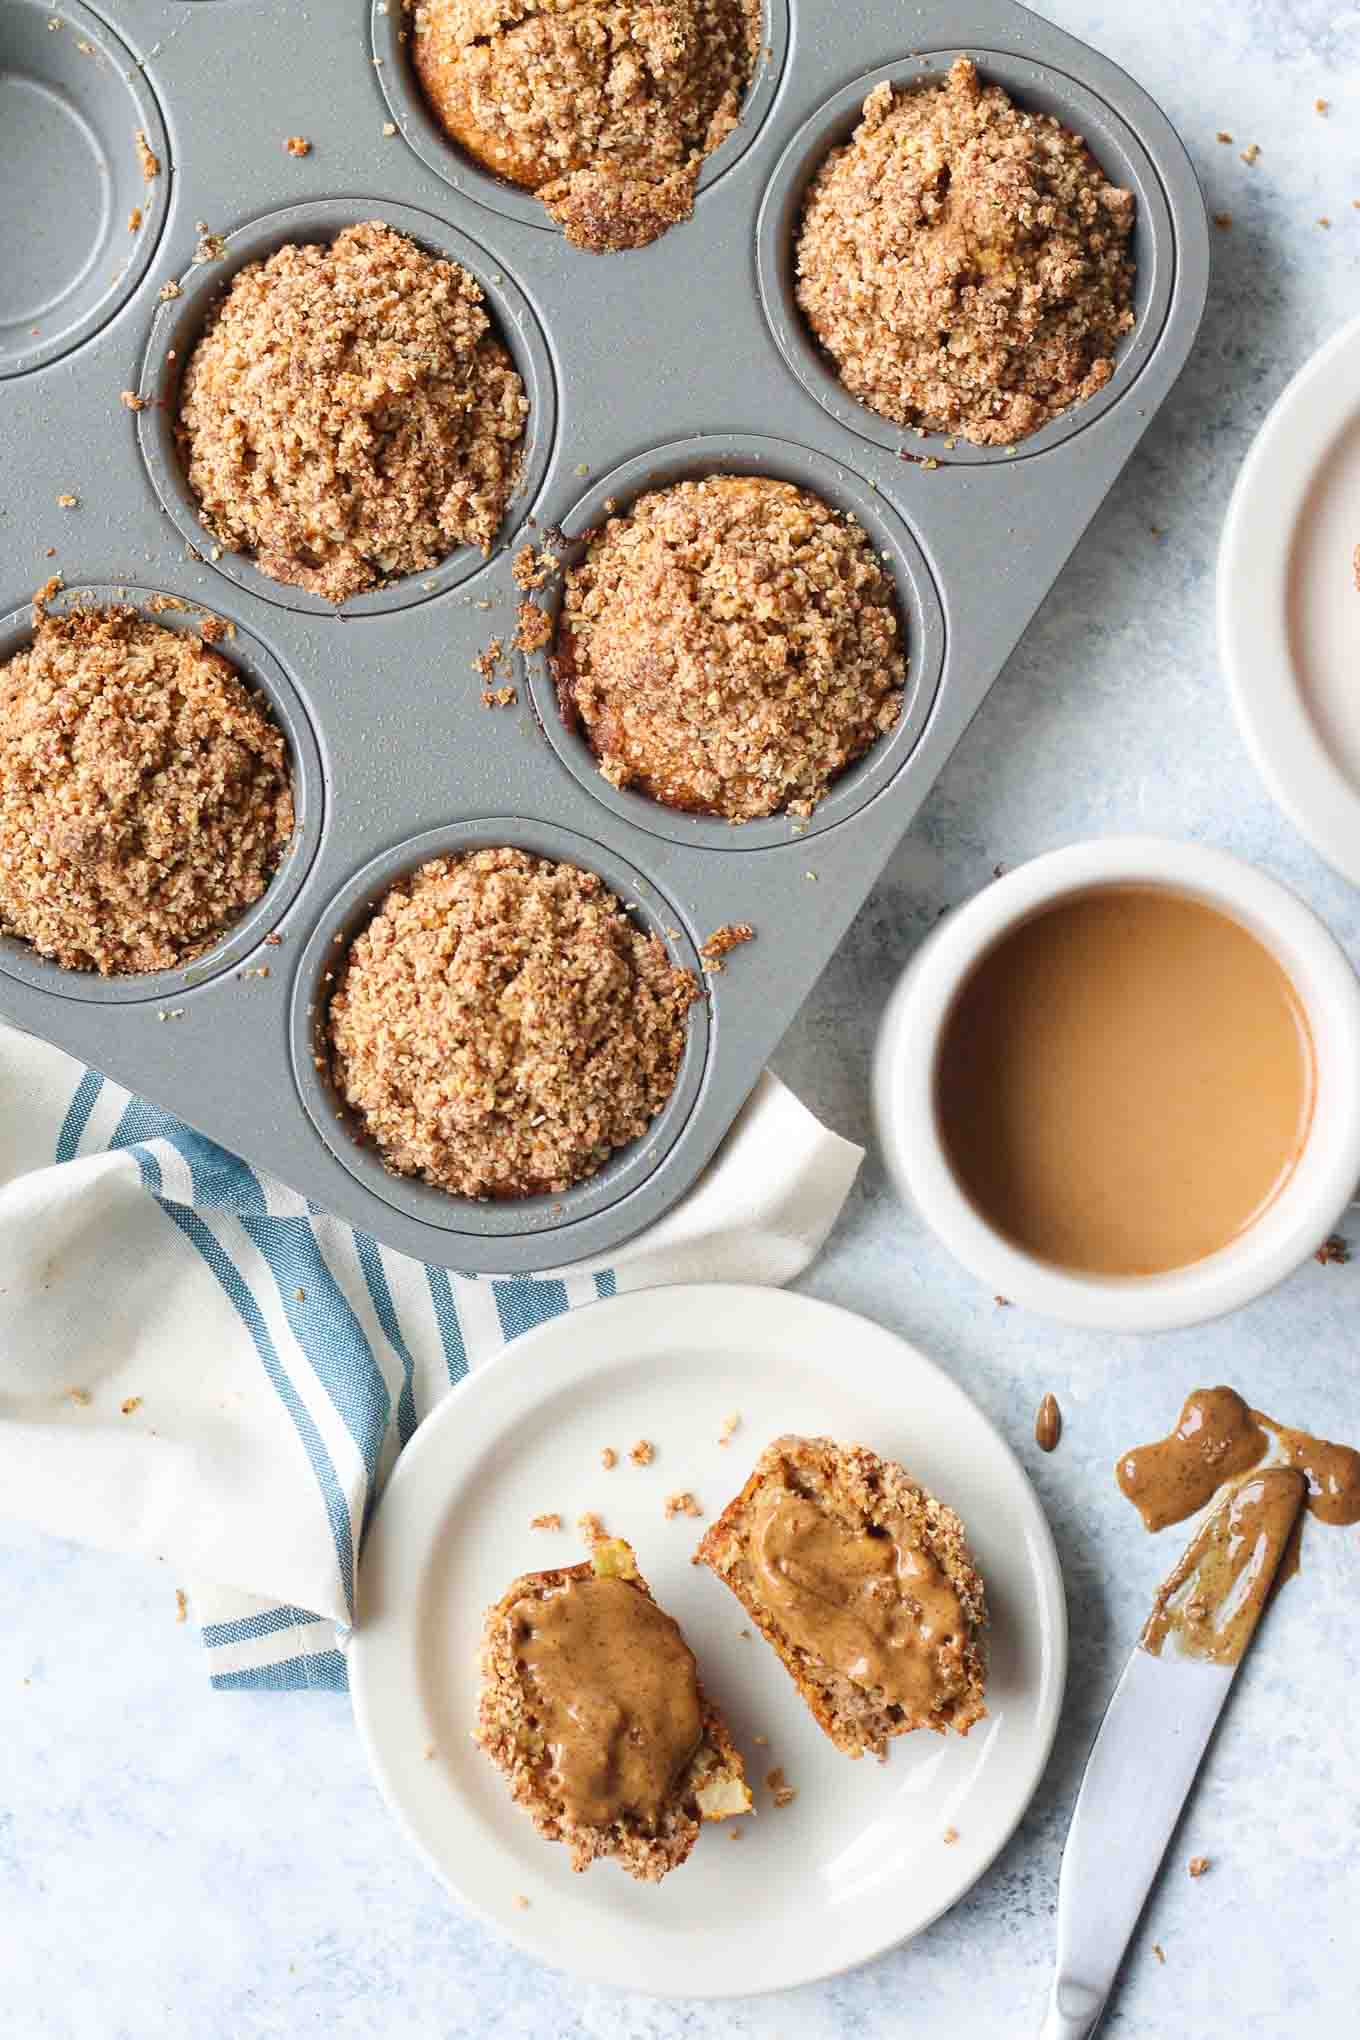 Muffins in the tin with a cup of coffee and almond butter spread on a single muffin